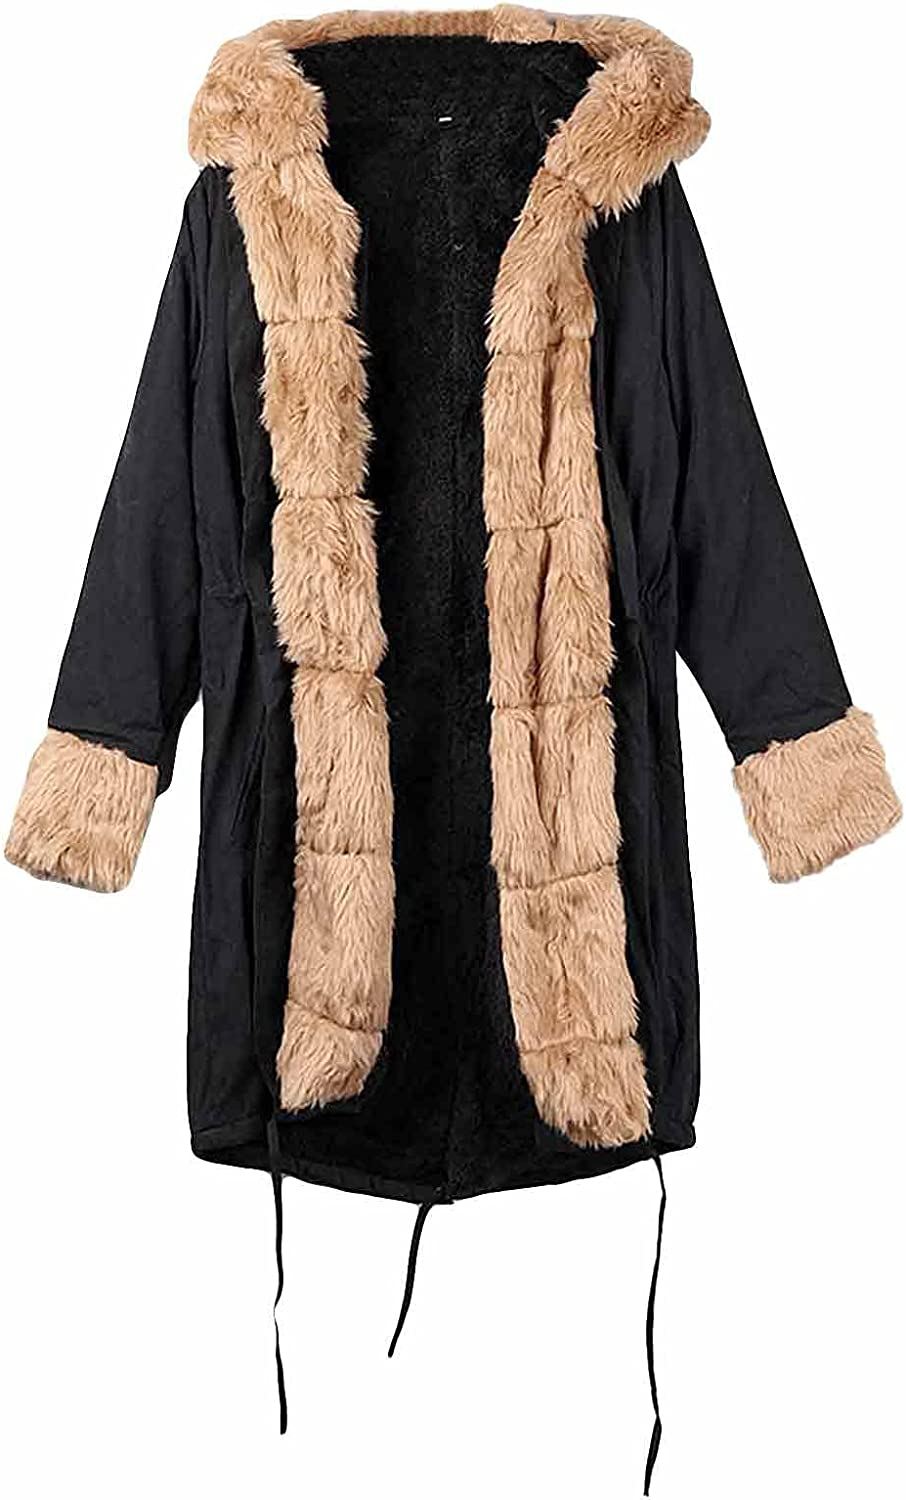 Women's Winter Hooded Lined Down Coat Thickened Cardigan Jacket With Pockets Faux Fur Warm Jacket Mid-Long Overcoat